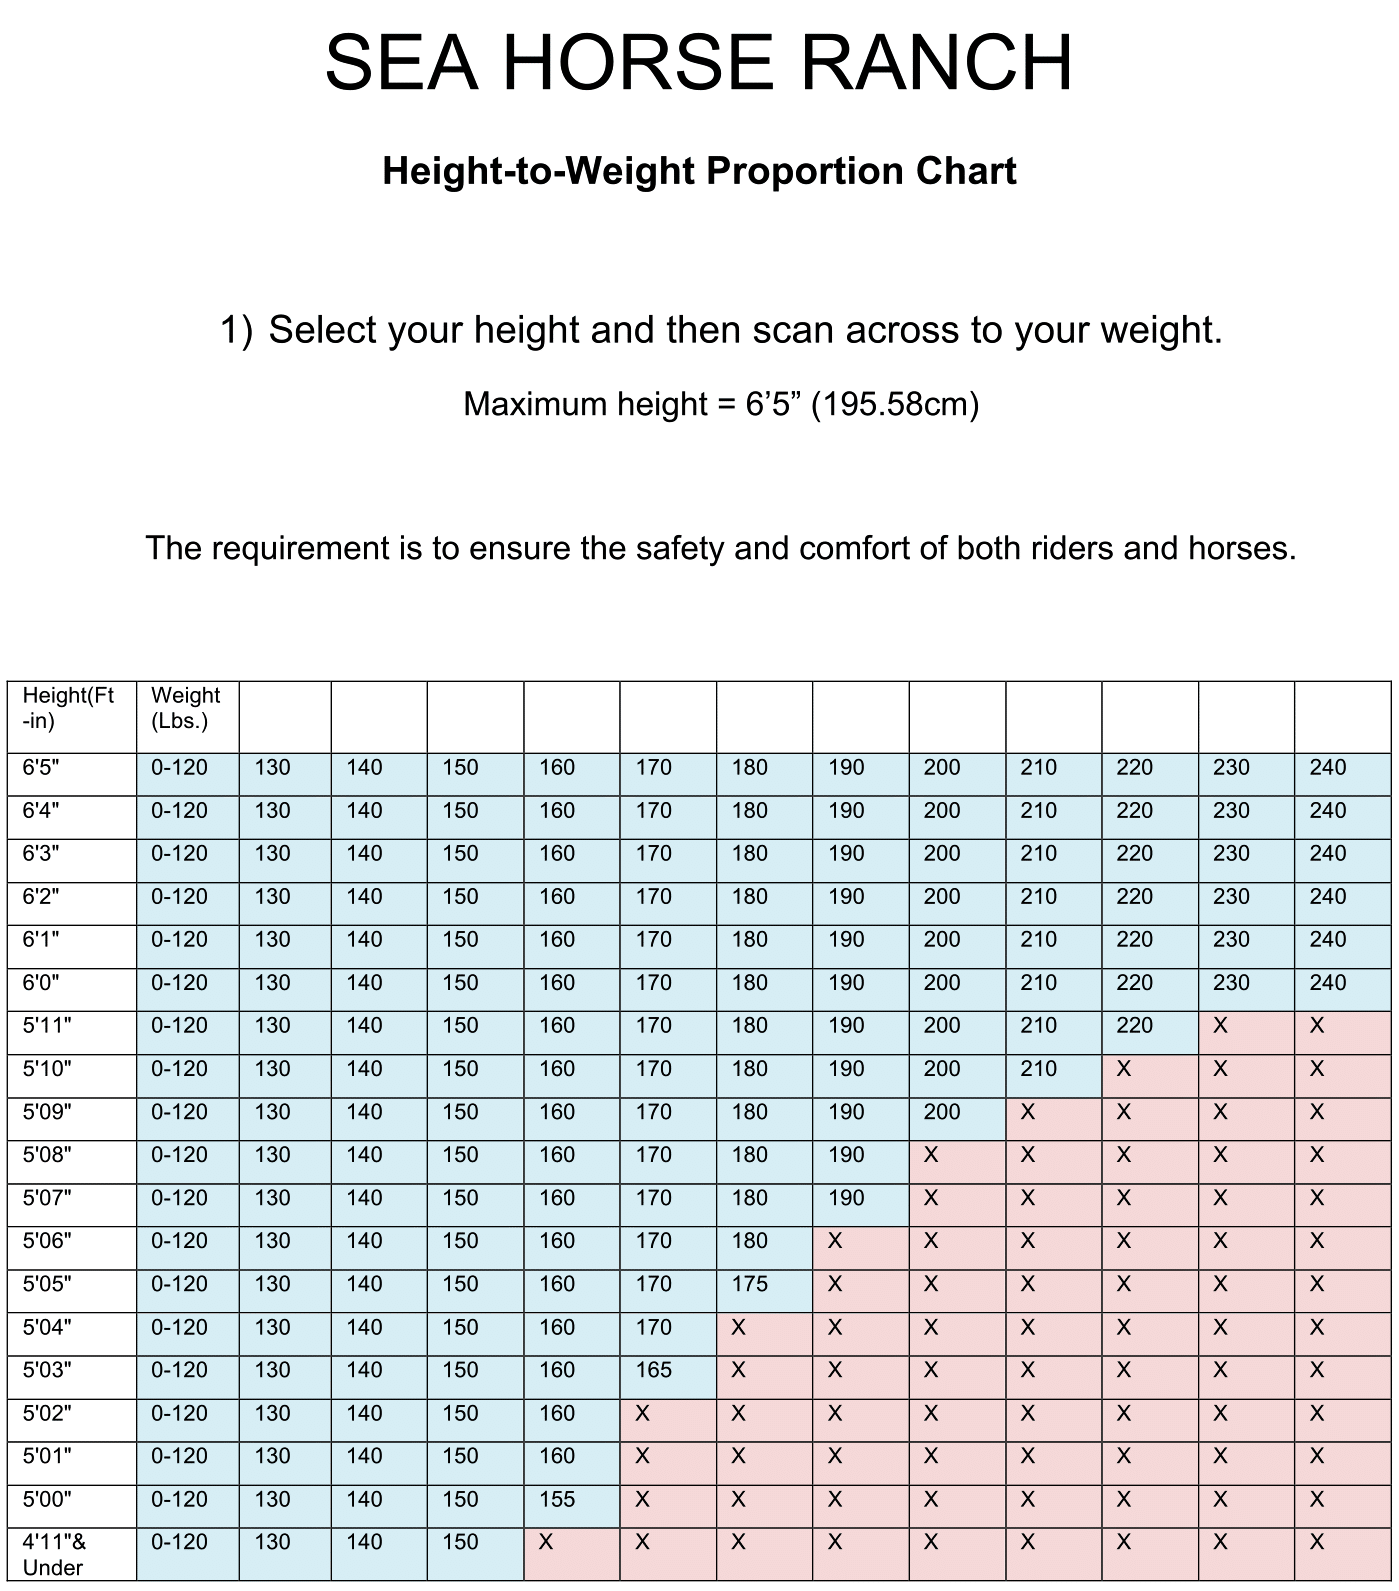 horse height chart: Height weight restrictions horseback riding sea horse ranch